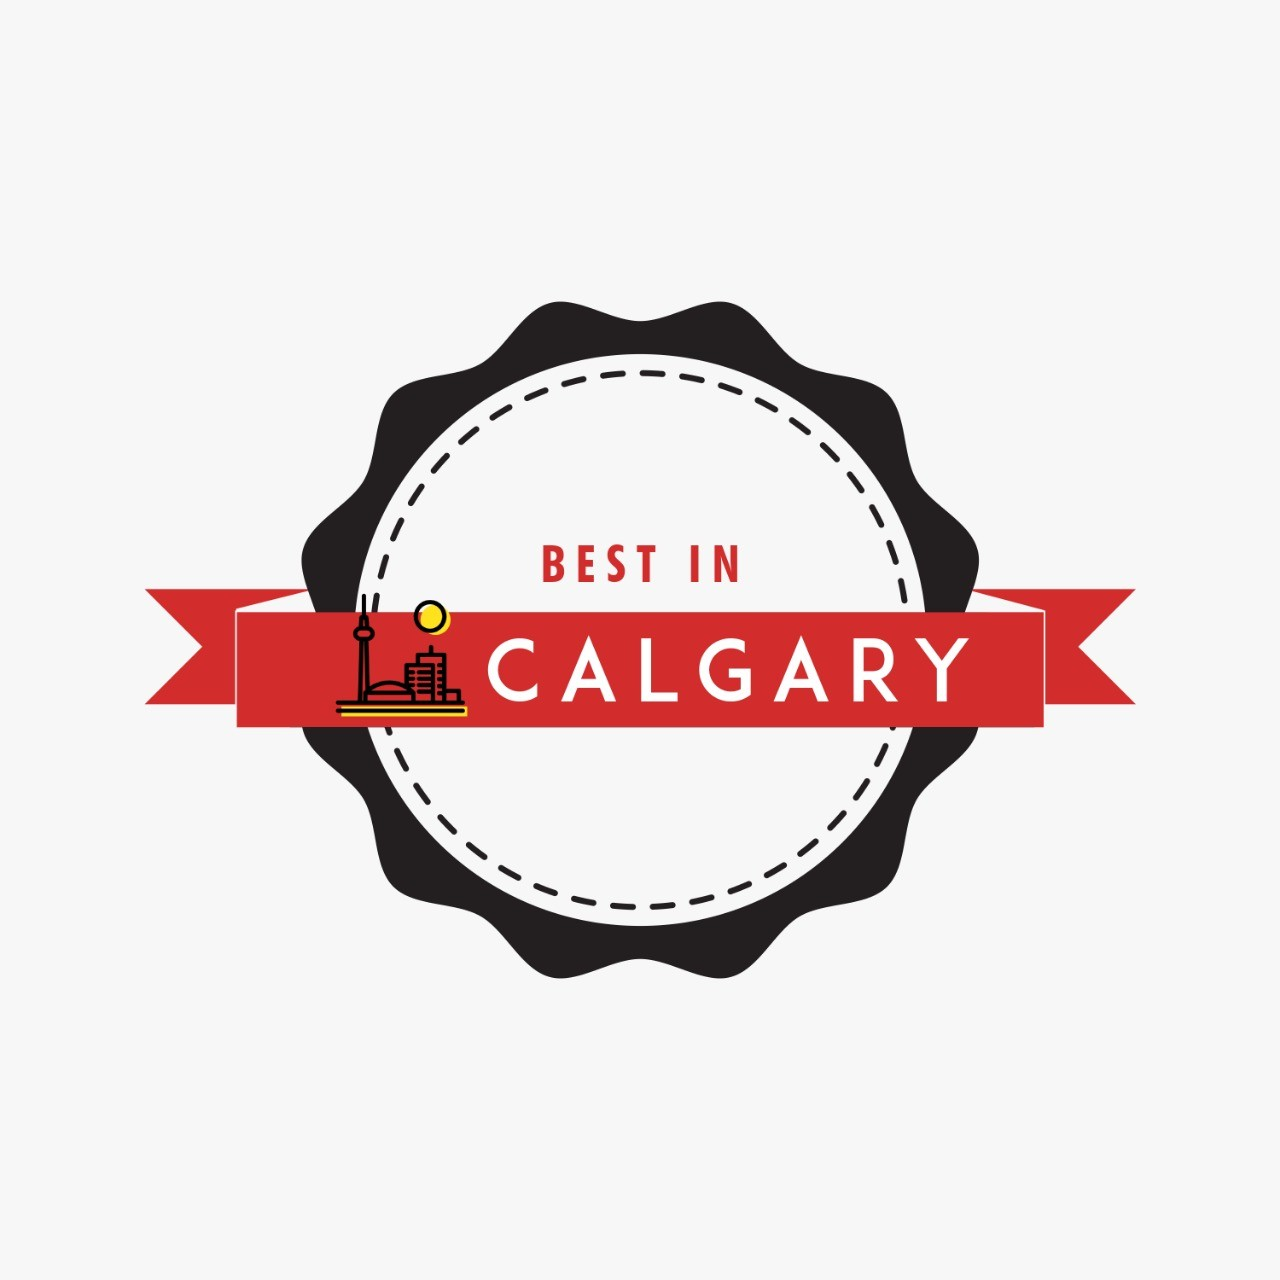 https://unifiedservices.ca/wp-content/uploads/2020/12/Best-in-Calgary-Badge-1.jpeg